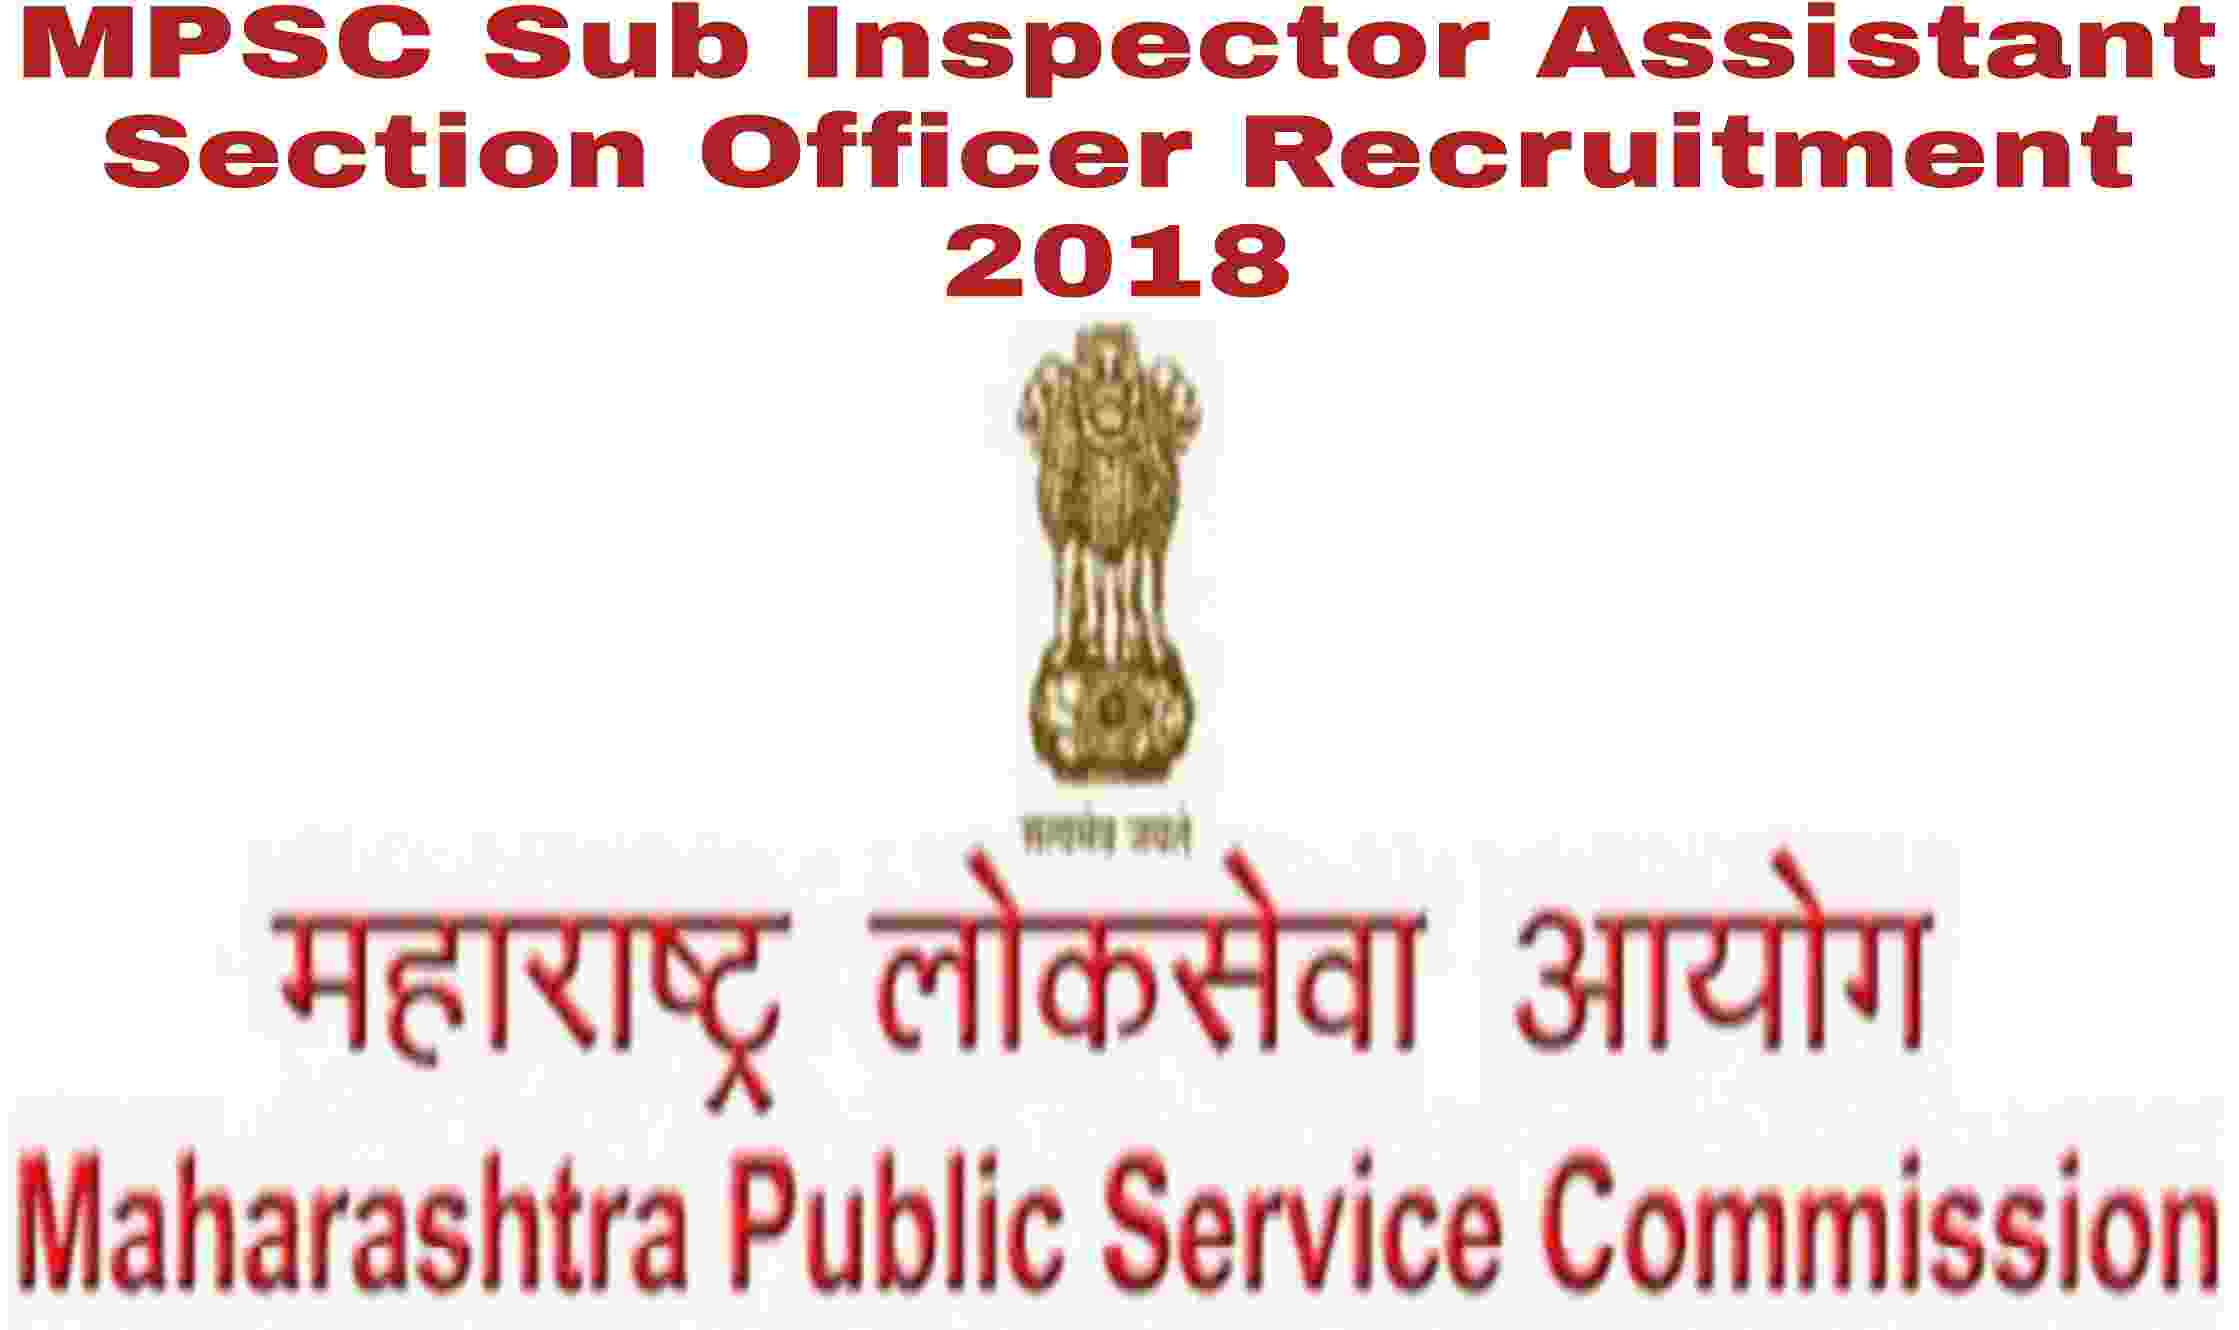 MPSC Sub Inspector Assistant Section Officer Recruitment 2018